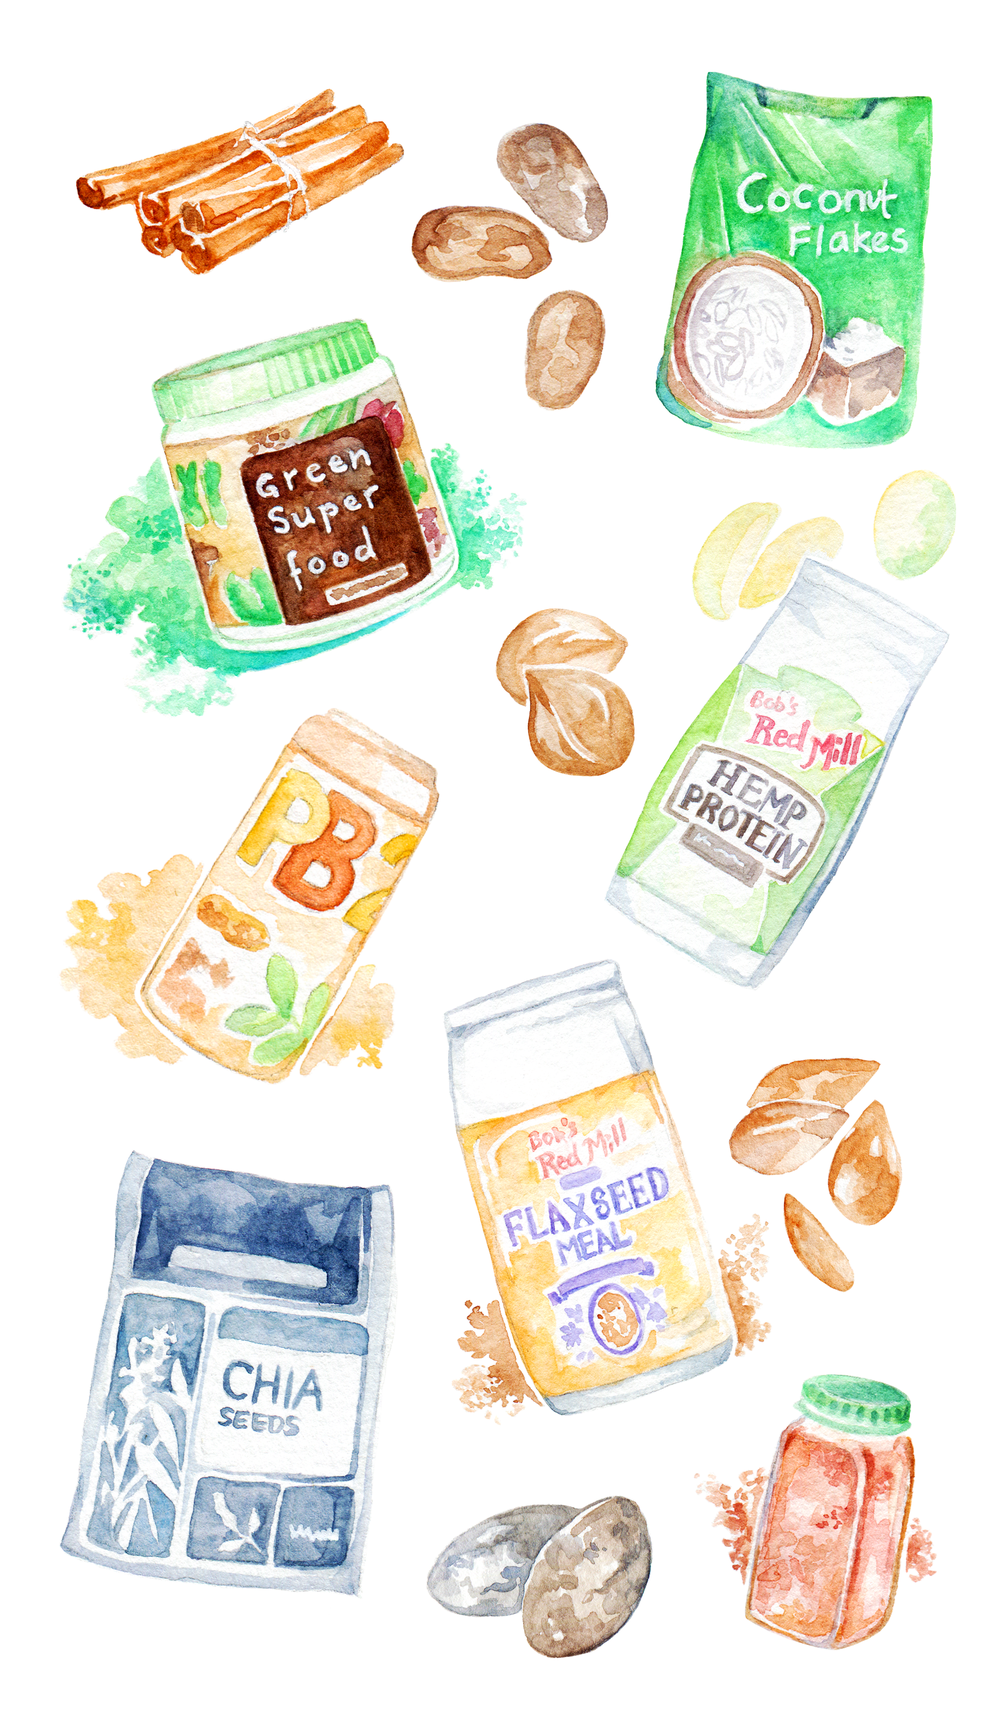 vegan-nutrition-guide-illustration-watercolor.PNG